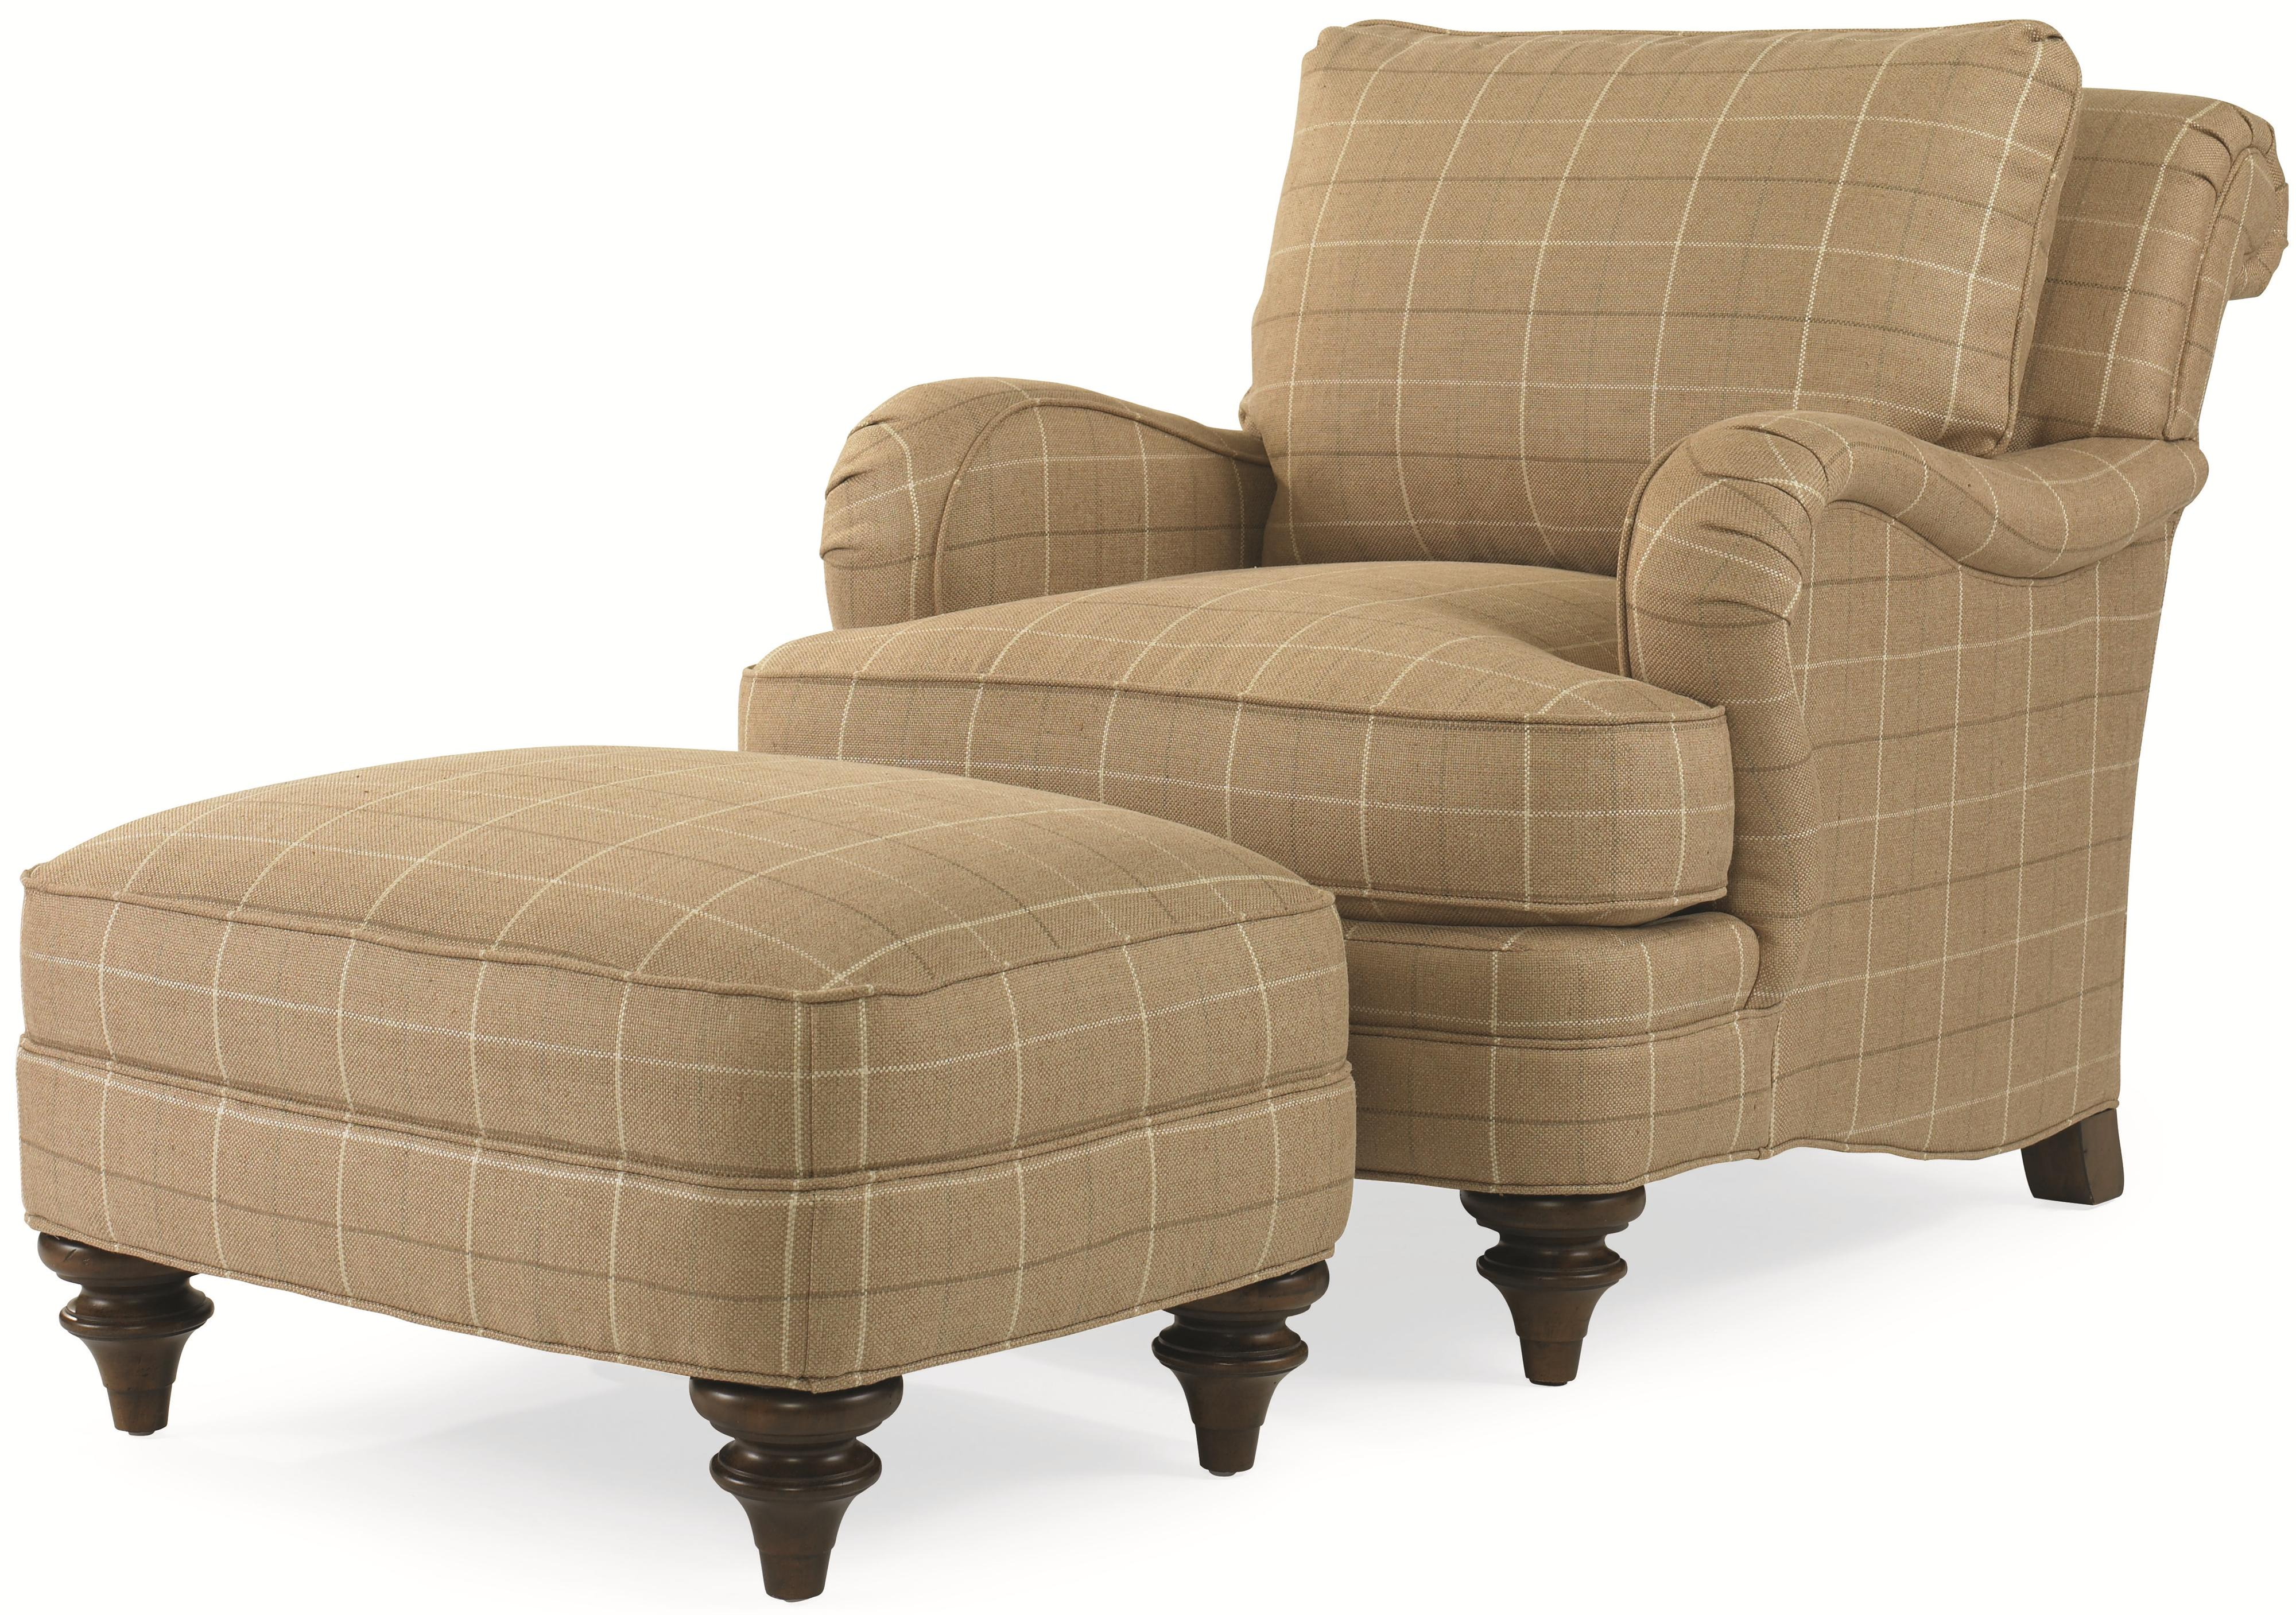 Elegance  Kent Chair & Ottoman by Century at Alison Craig Home Furnishings